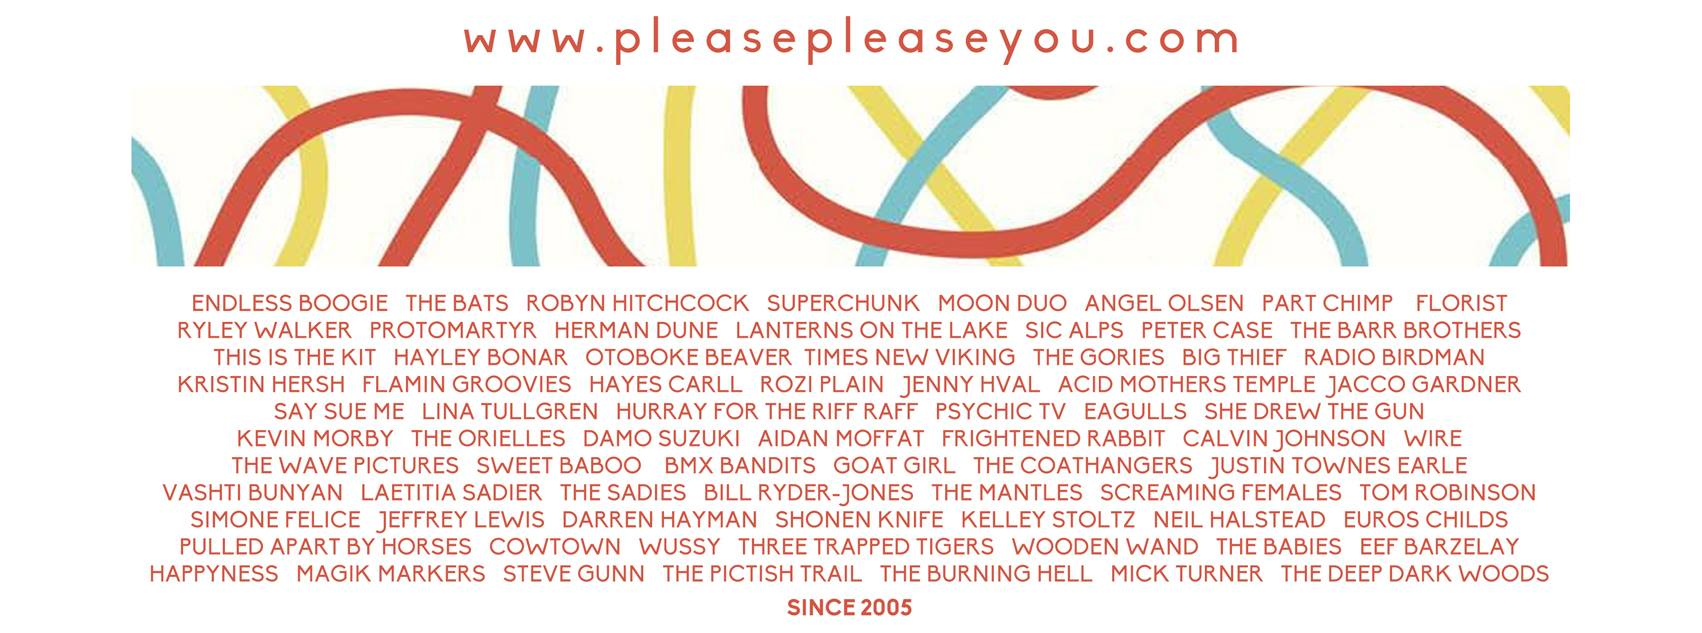 PREVIEW: forthcoming gigs from Please Please You